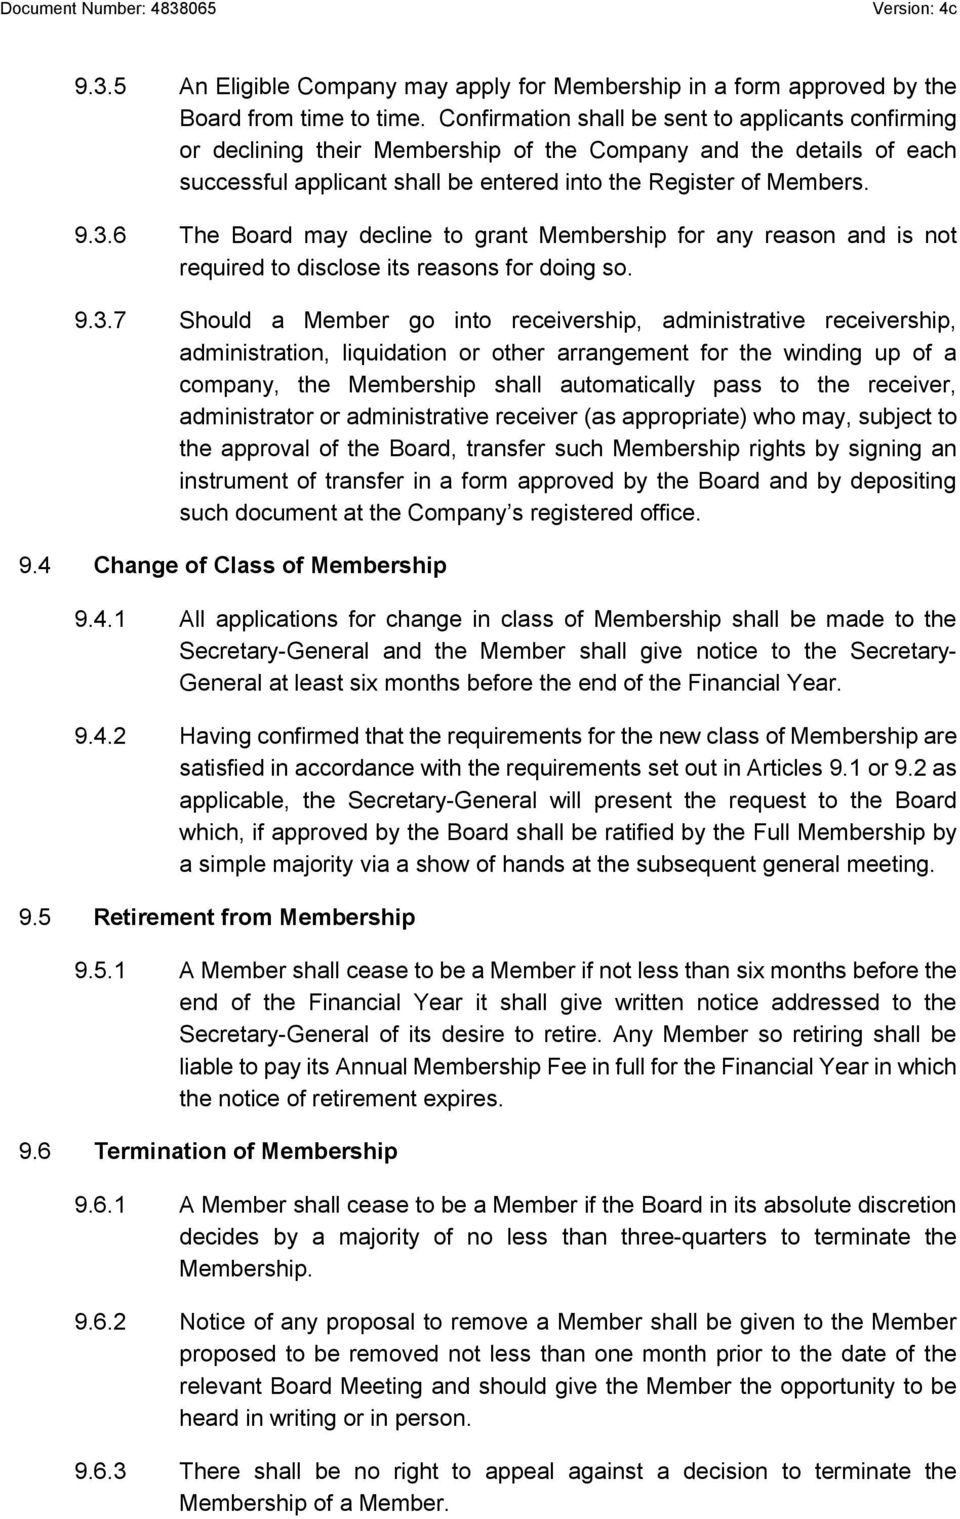 6 The Board may decline to grant Membership for any reason and is not required to disclose its reasons for doing so. 9.3.